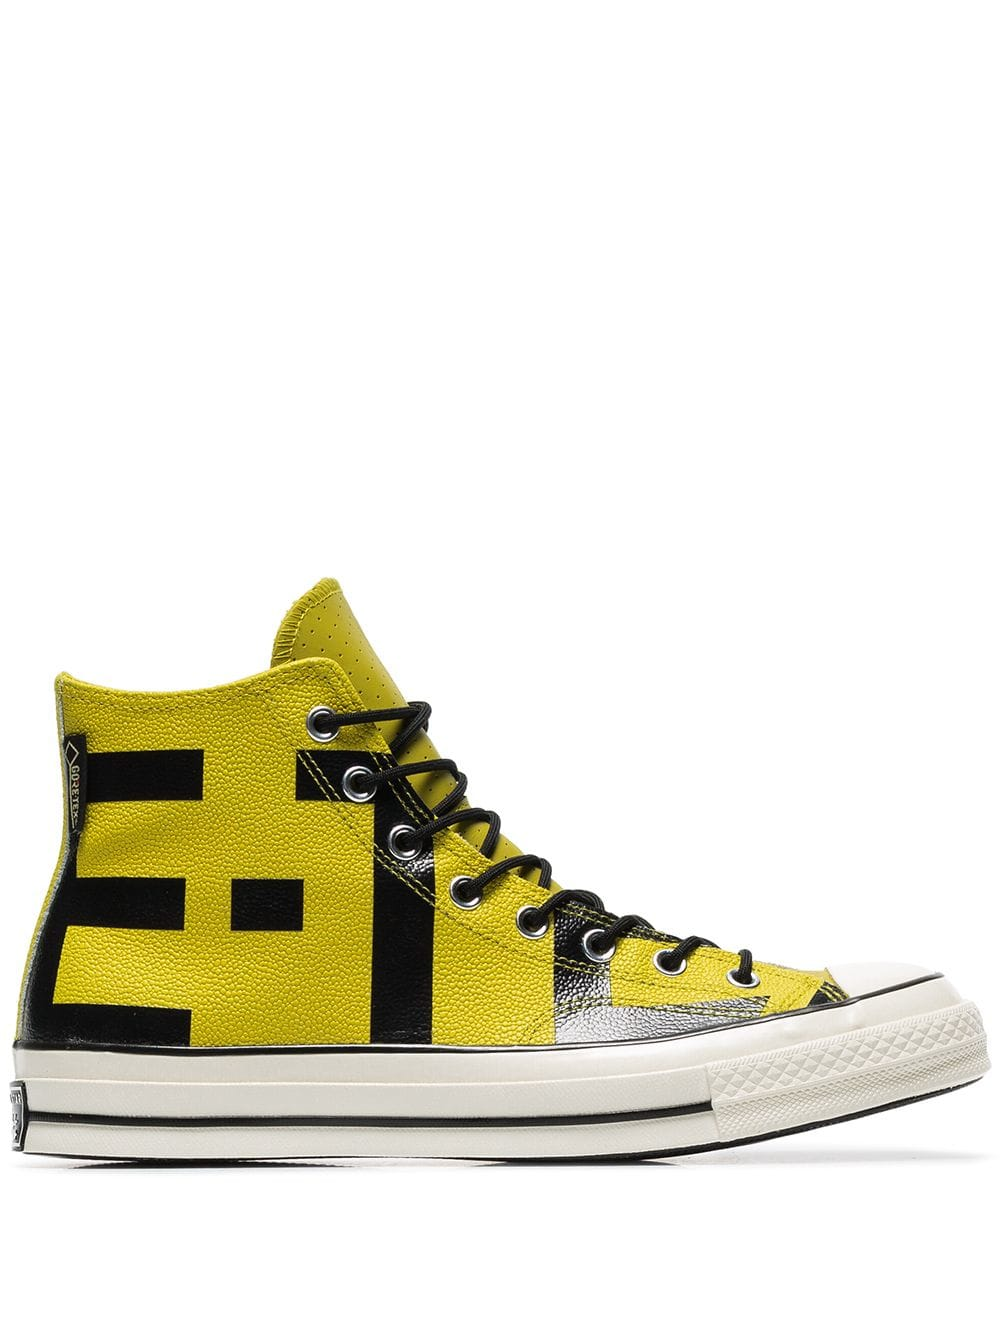 ad4bcc64482764 Perfectly Protected  Converse Yellow Chuck Taylor Gore-tex™Sneaker ...